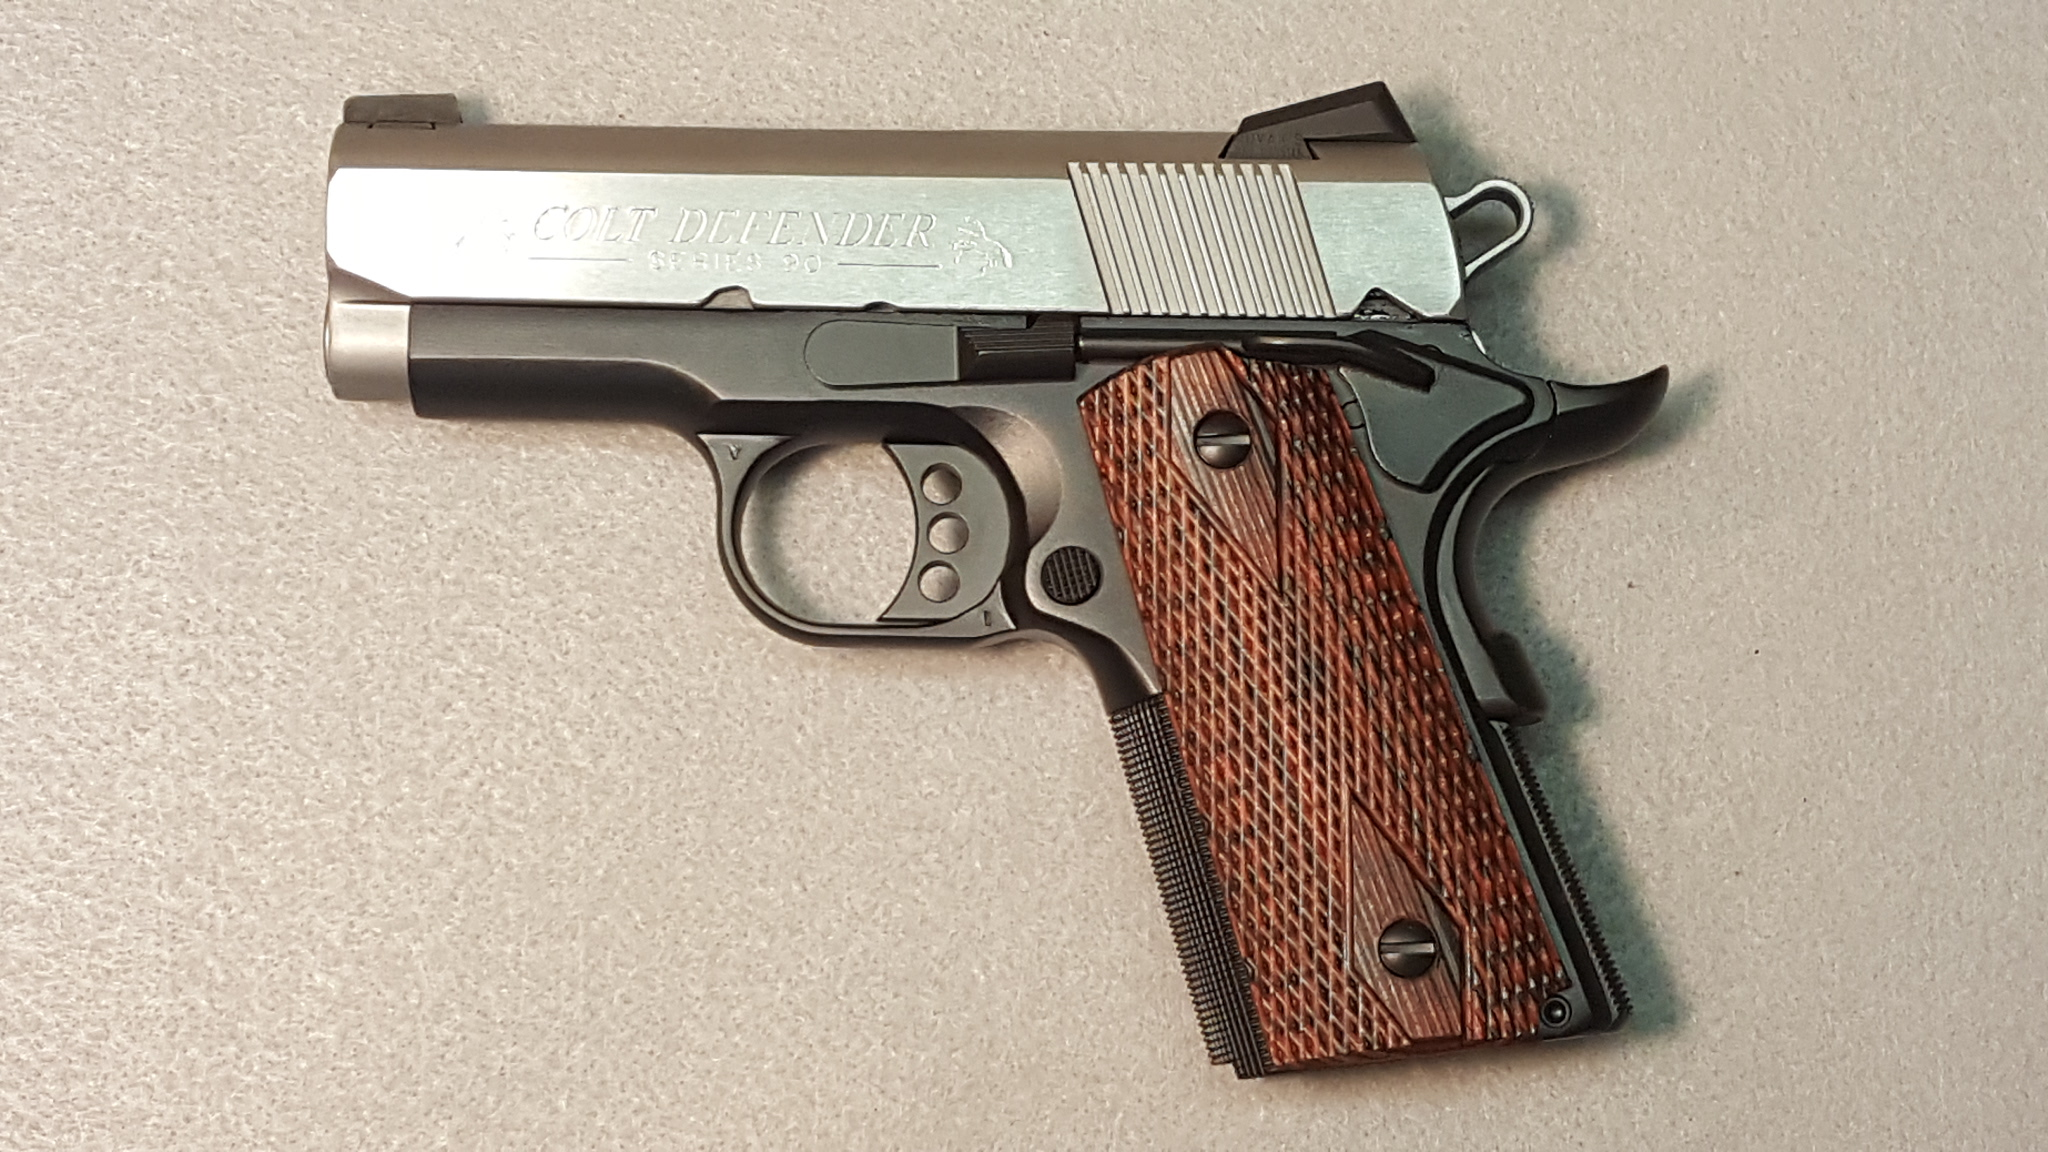 7799 - Colt Defender Lightweight 45ACP